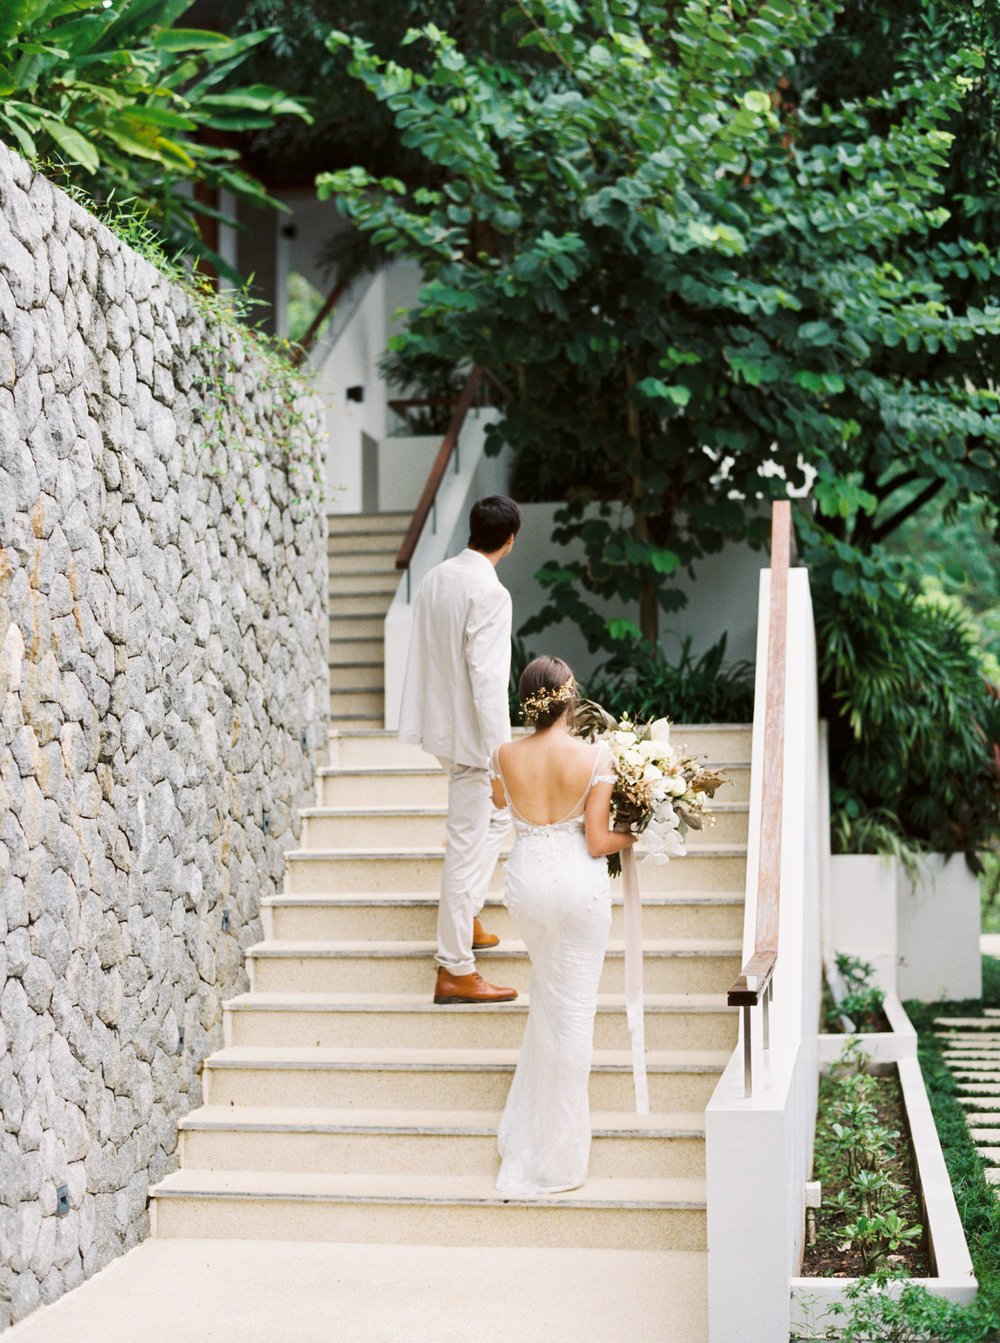 Destination Wedding Phuket Thailand Fine Art Film Photographer Sheri McMahon-00033-33.jpg